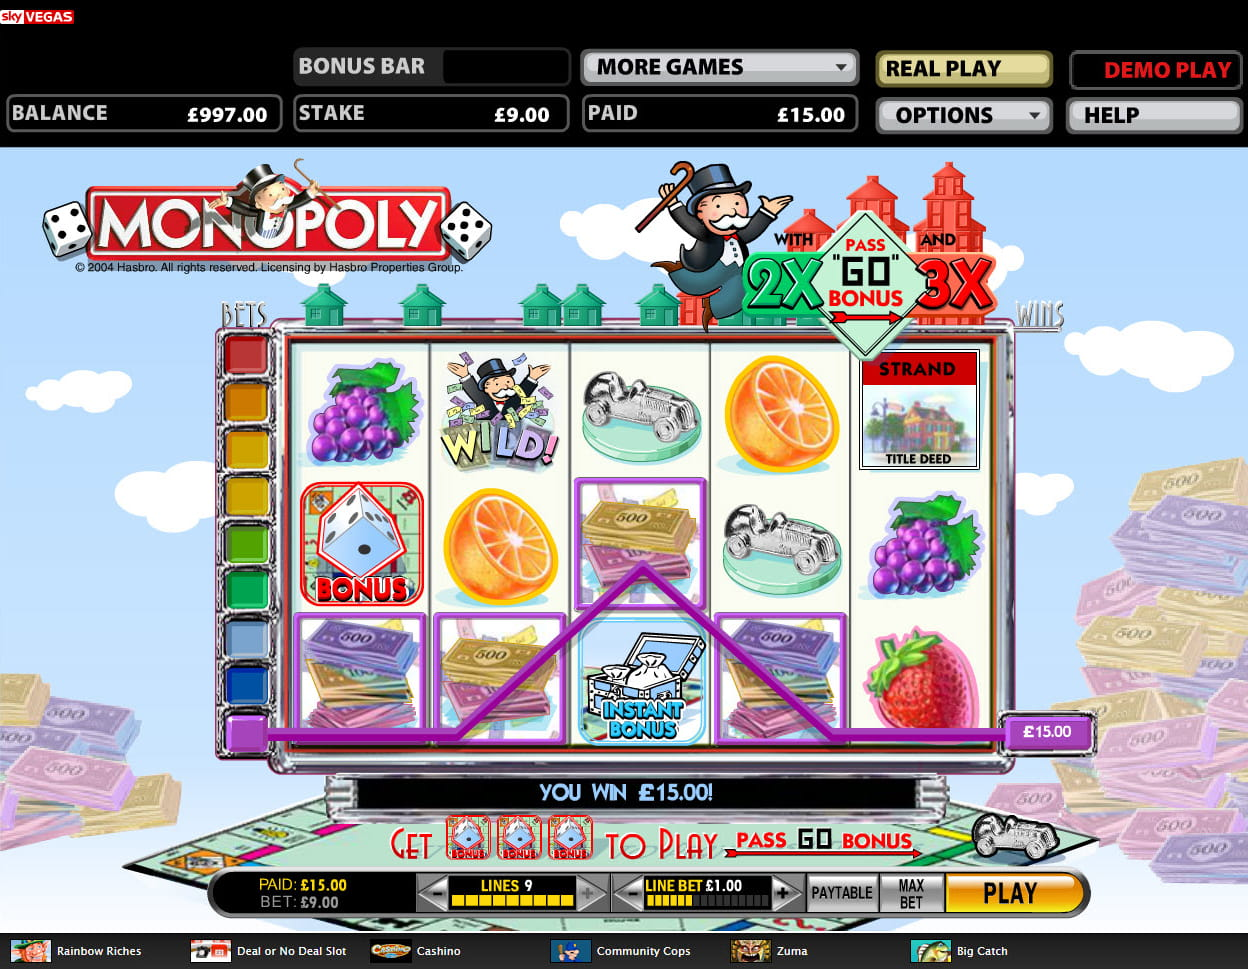 Sky Vegas Casino Review – Can This Online Casino be Trusted